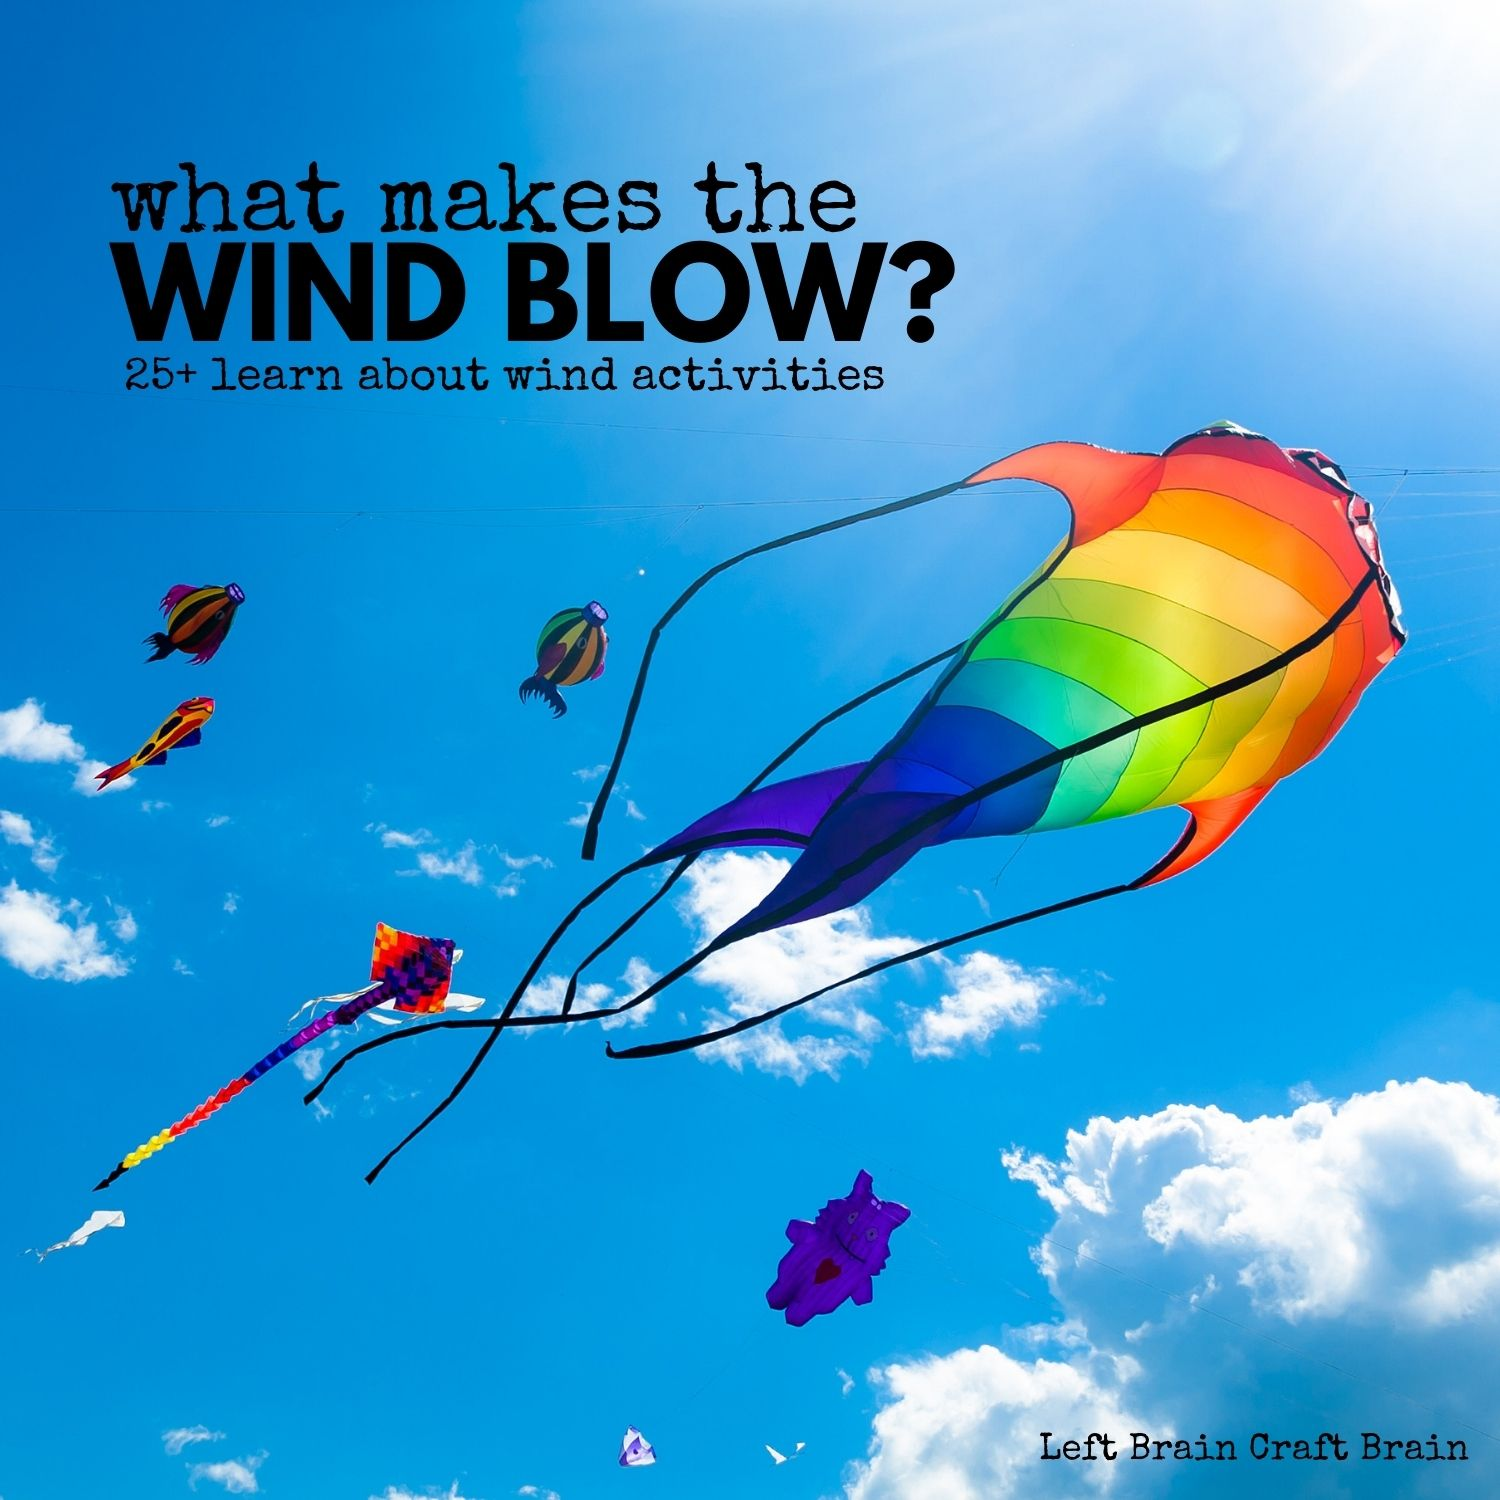 Learn about wind with 25 activities for kids: arts & crafts, science, motor skills, books, & more! Plus all the science behind what makes the wind blow.